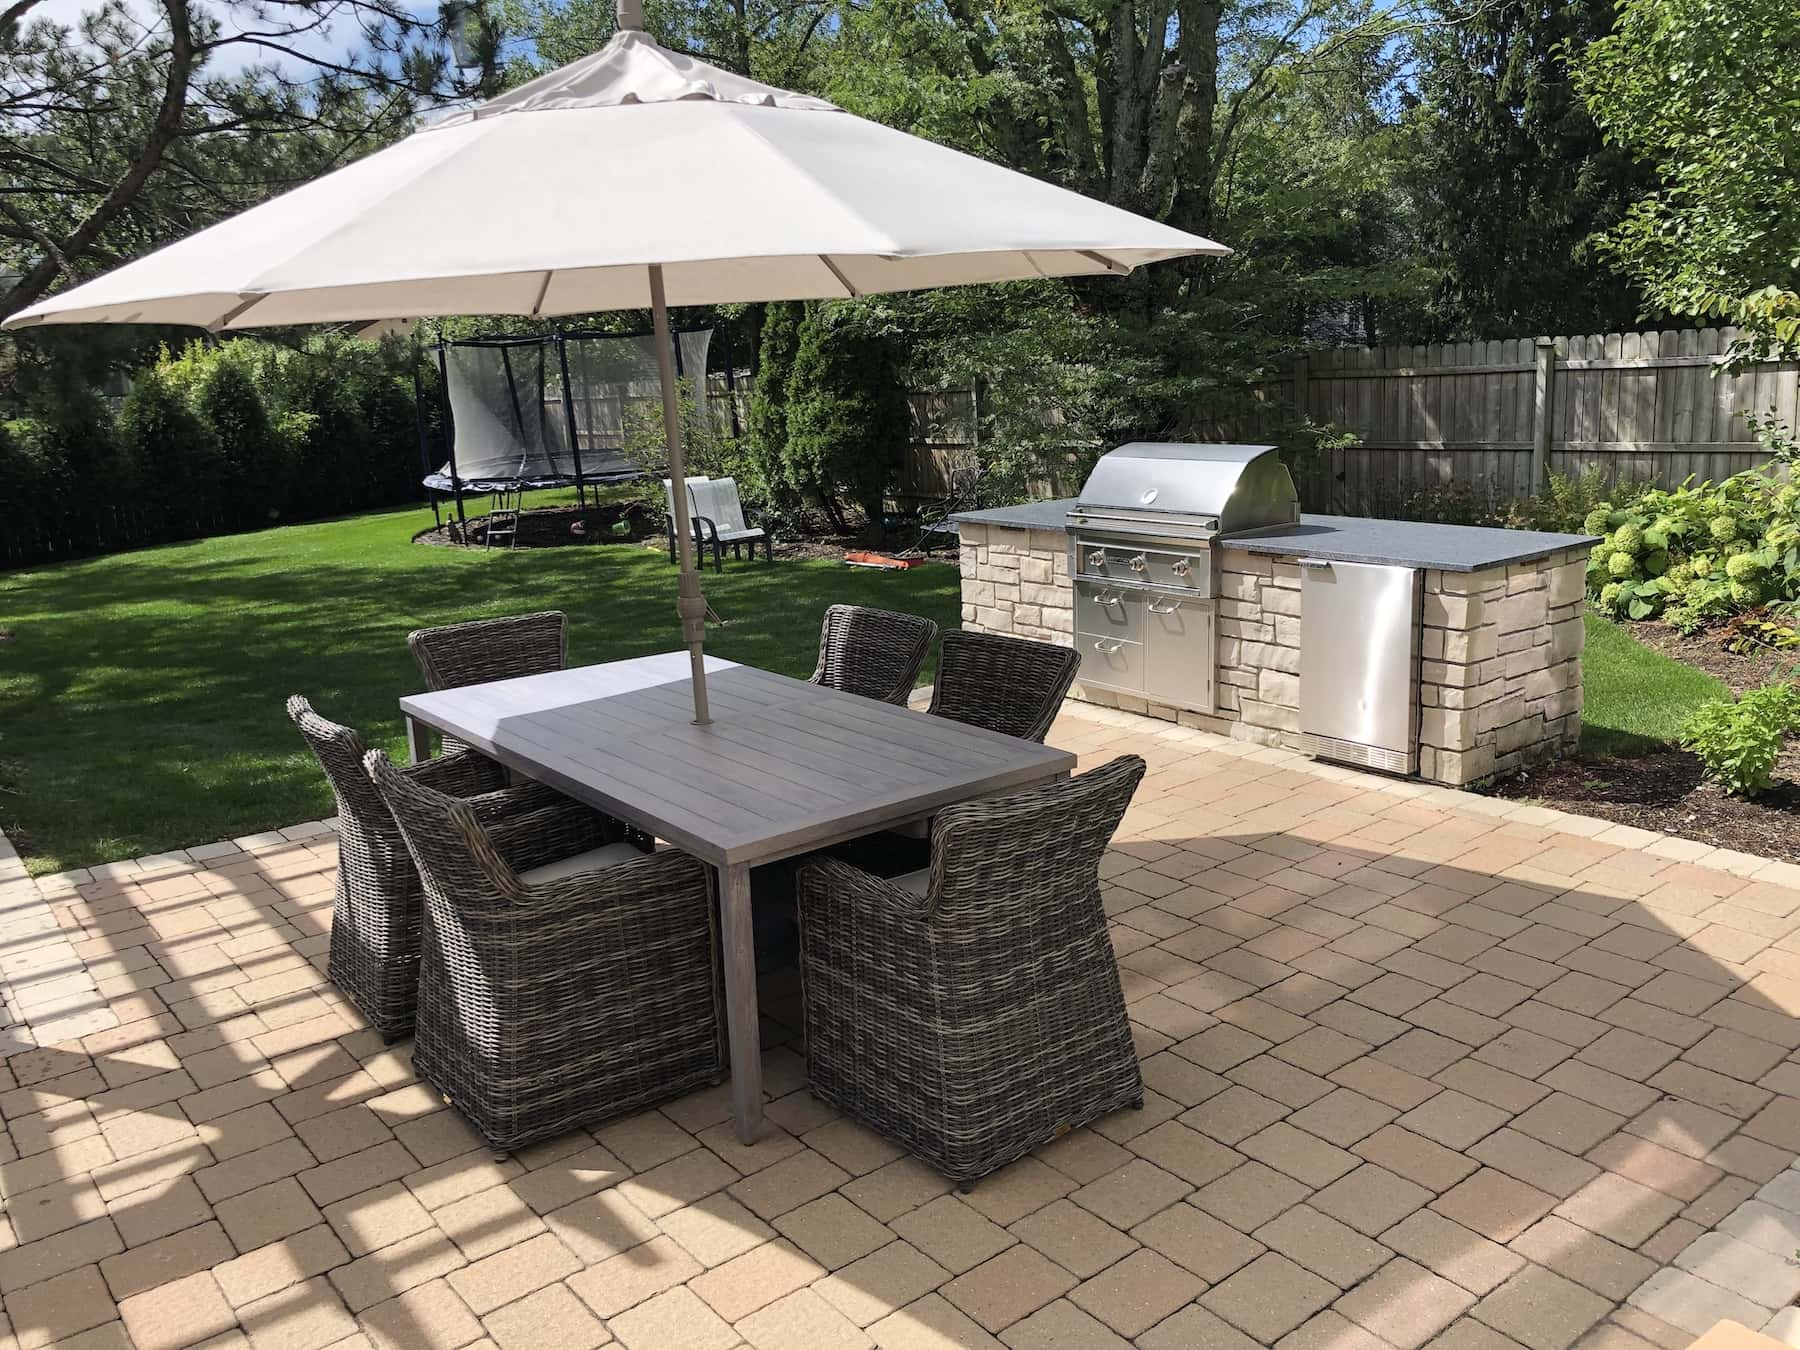 Outdoor Dining With Outdoor Kitchen Northbrook, IL